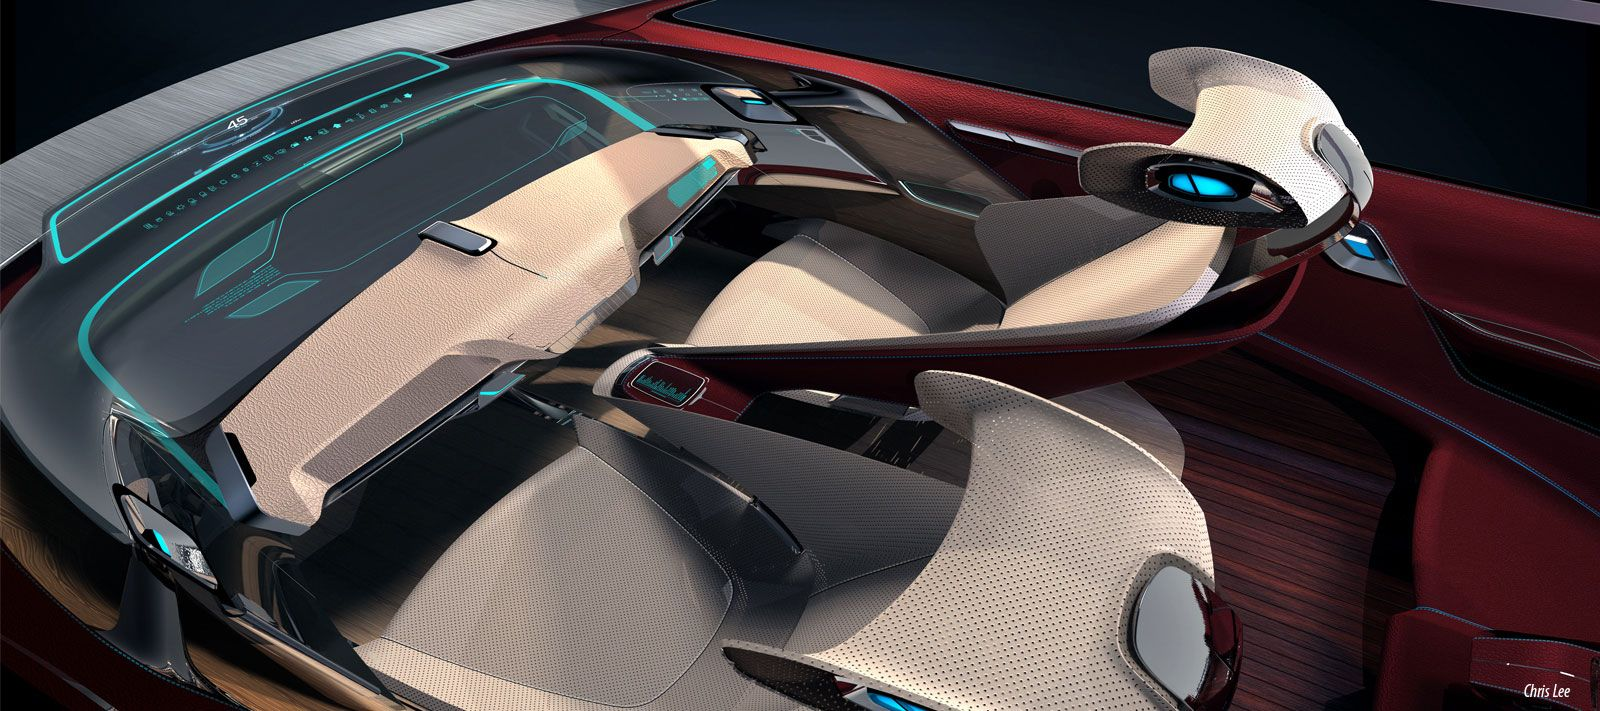 Bmw I7 Concept Interior Design Sketch Car Interior Design Car